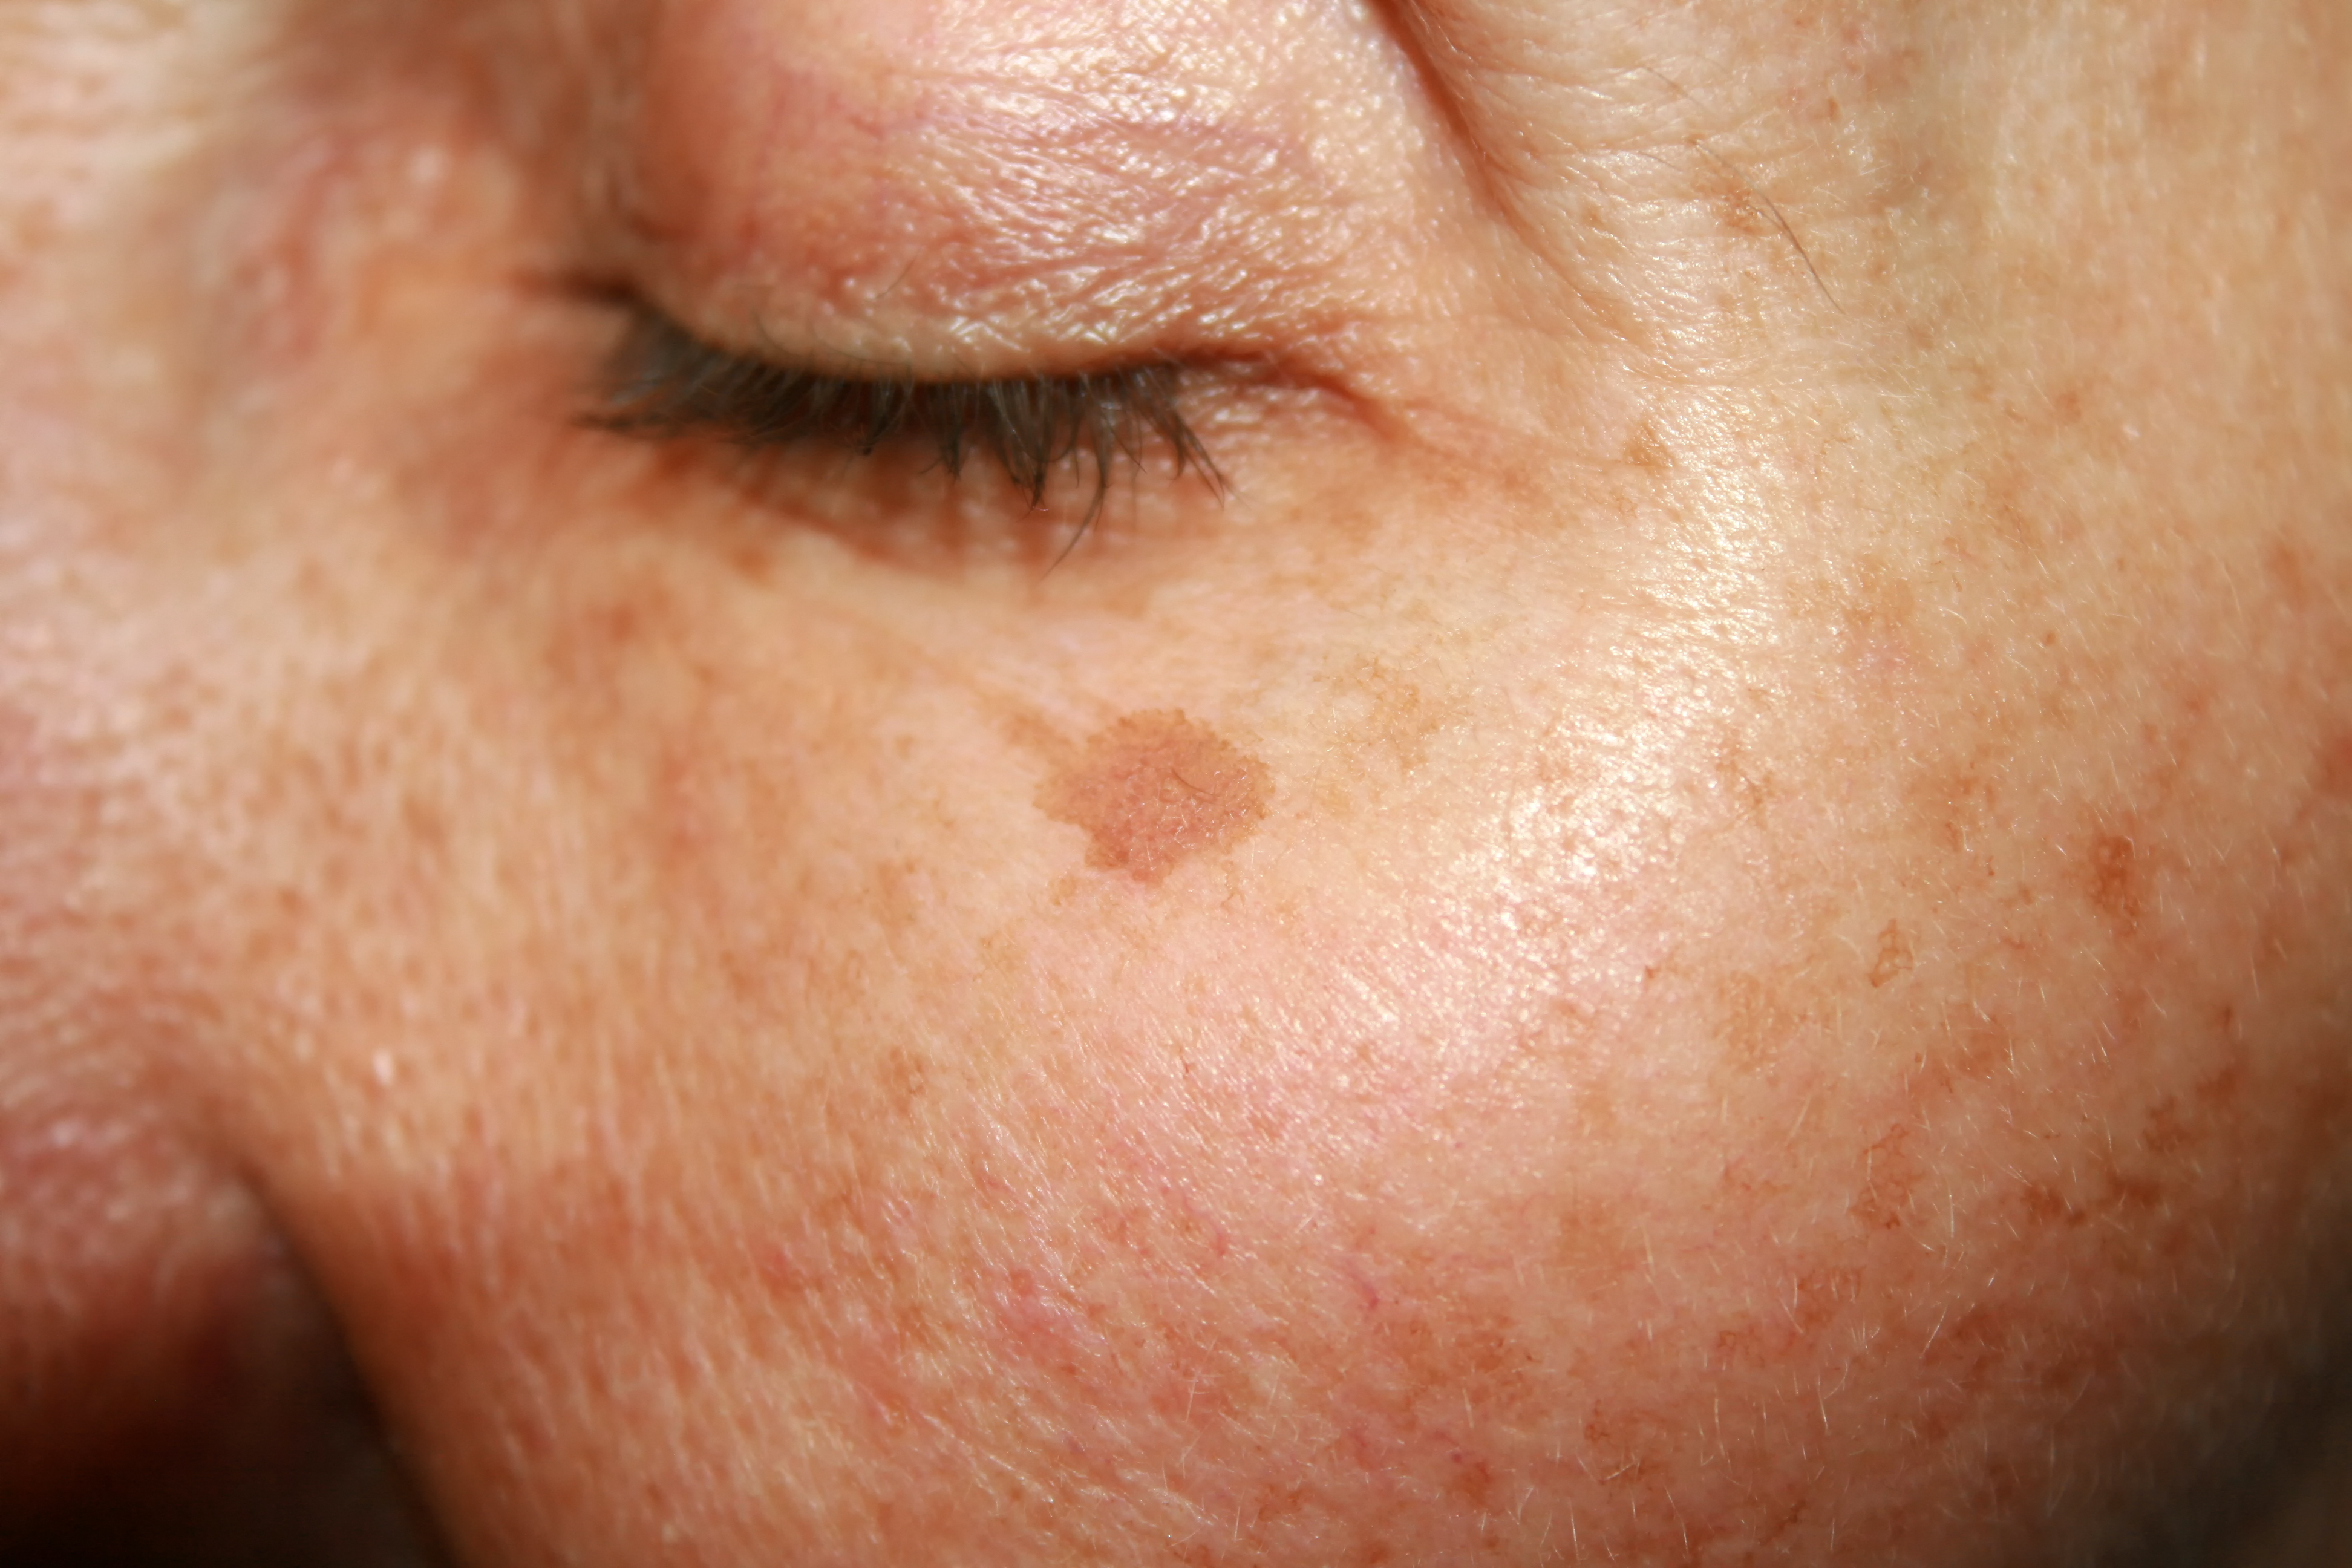 closed eye with an age spot, healthy skin after 40